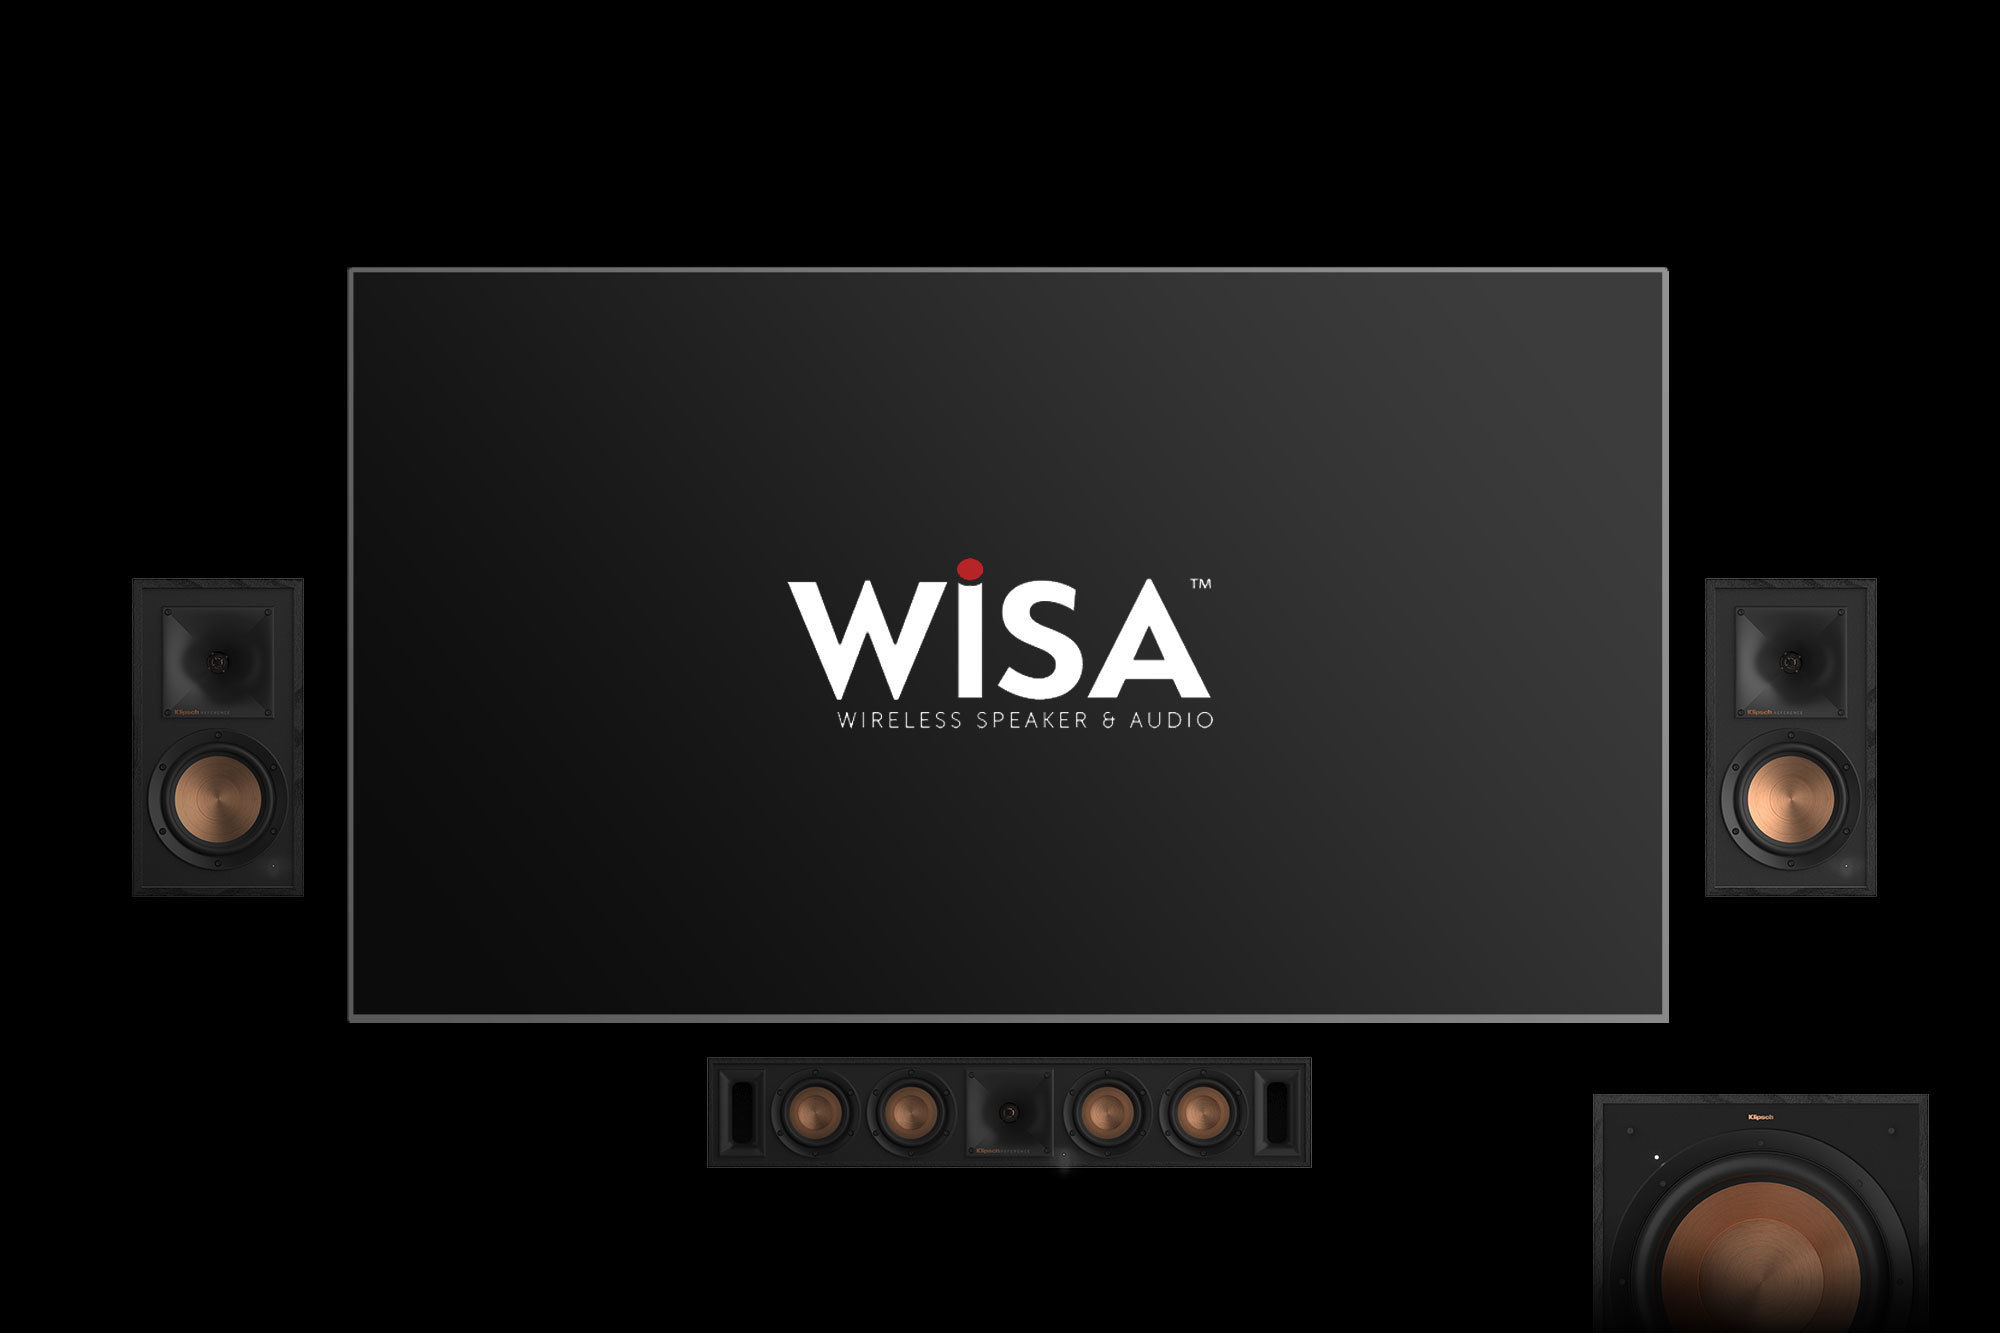 WiSA Product Card